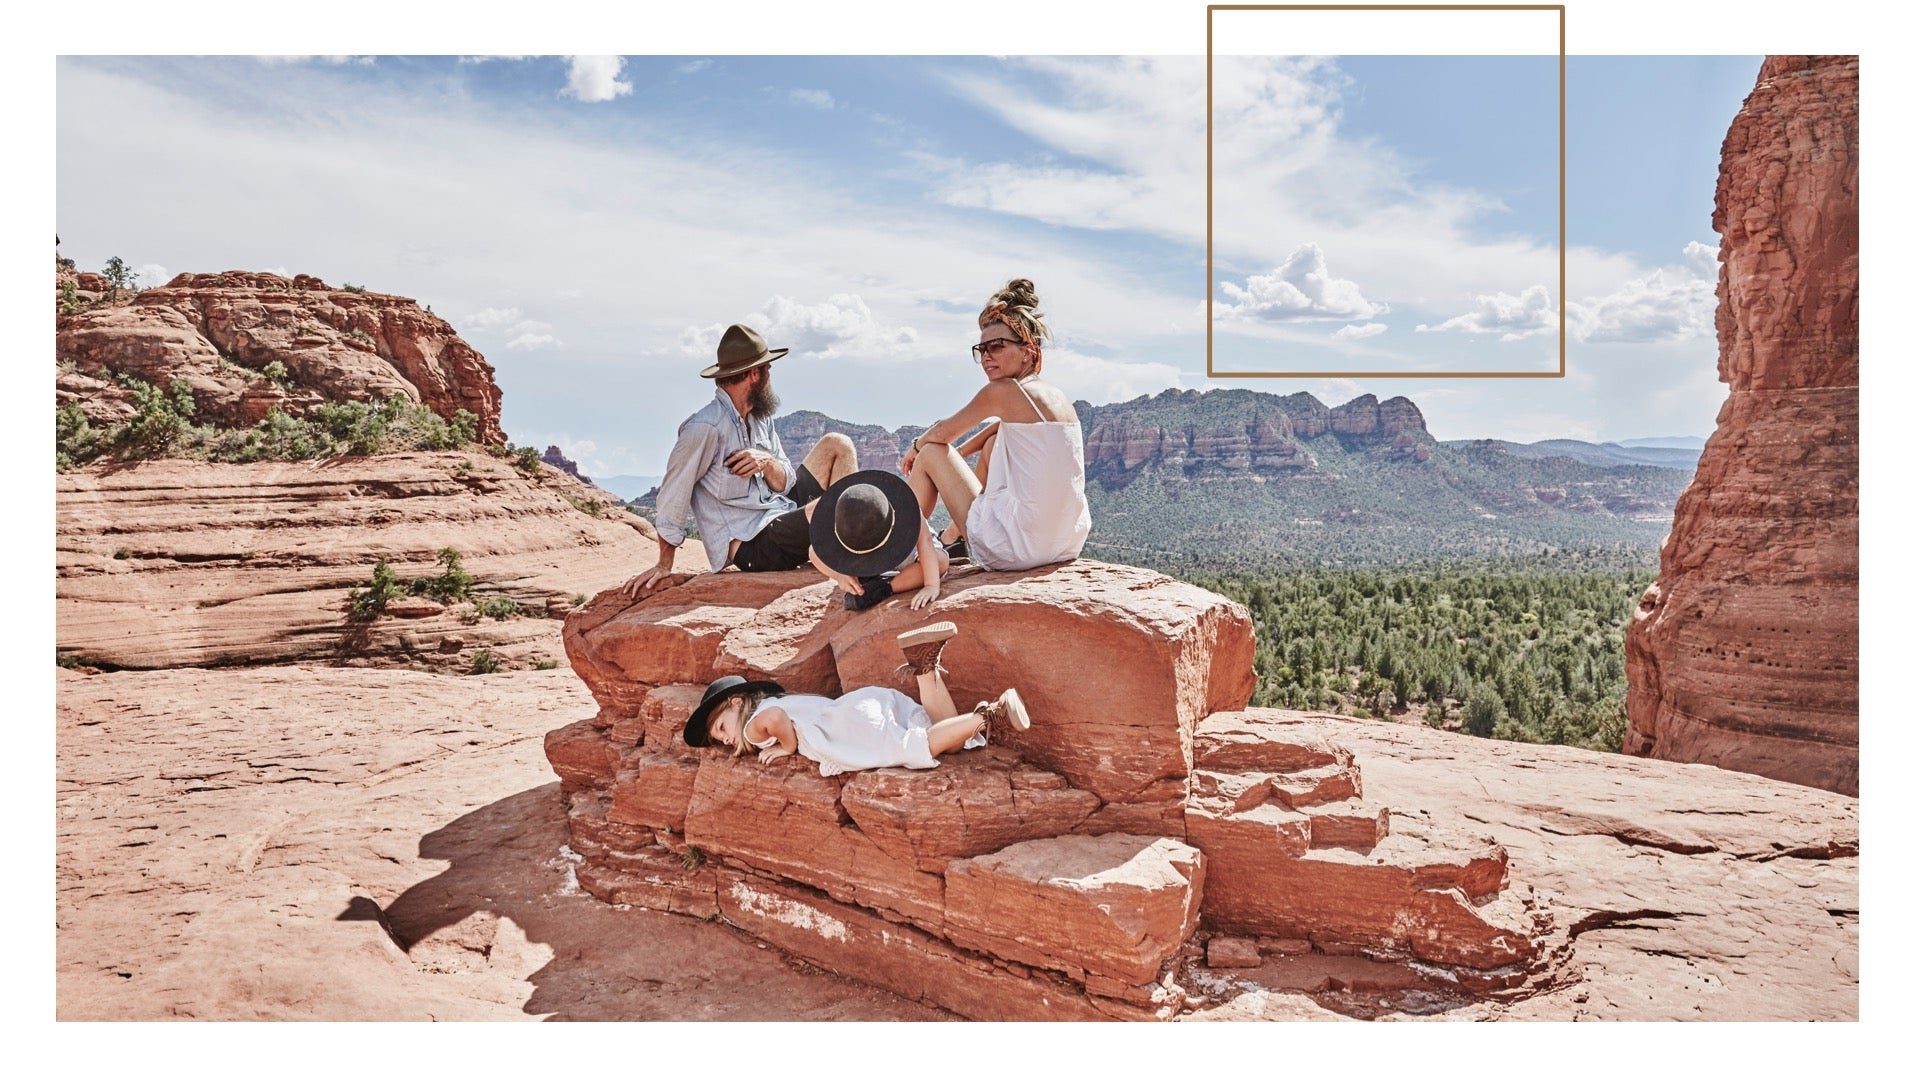 An image of Sheree and her family on a stack of red rocks in the middle of the American Southwest